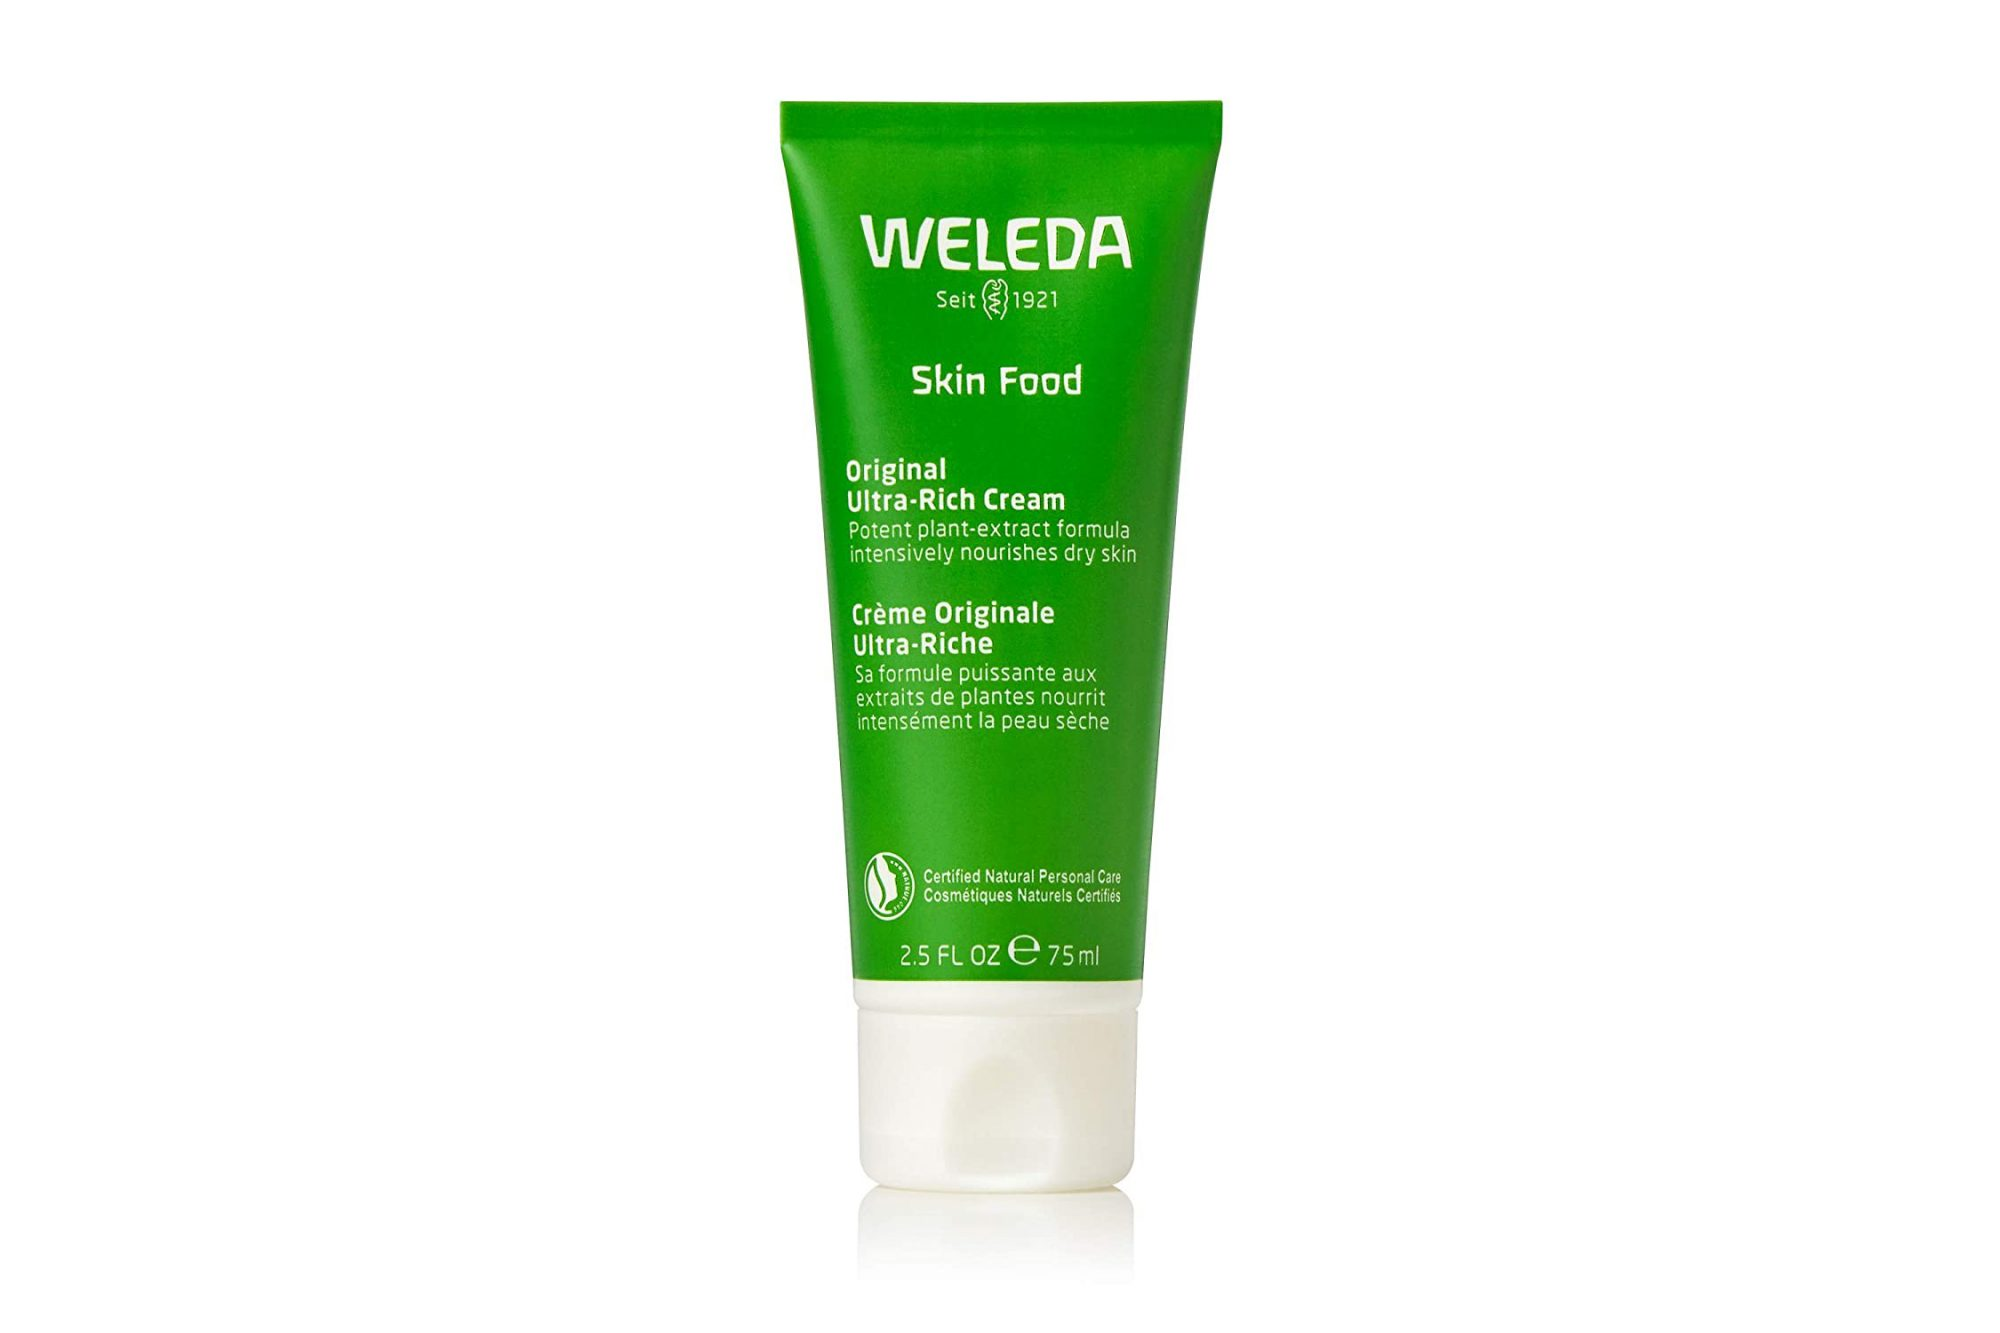 weleda skin food review